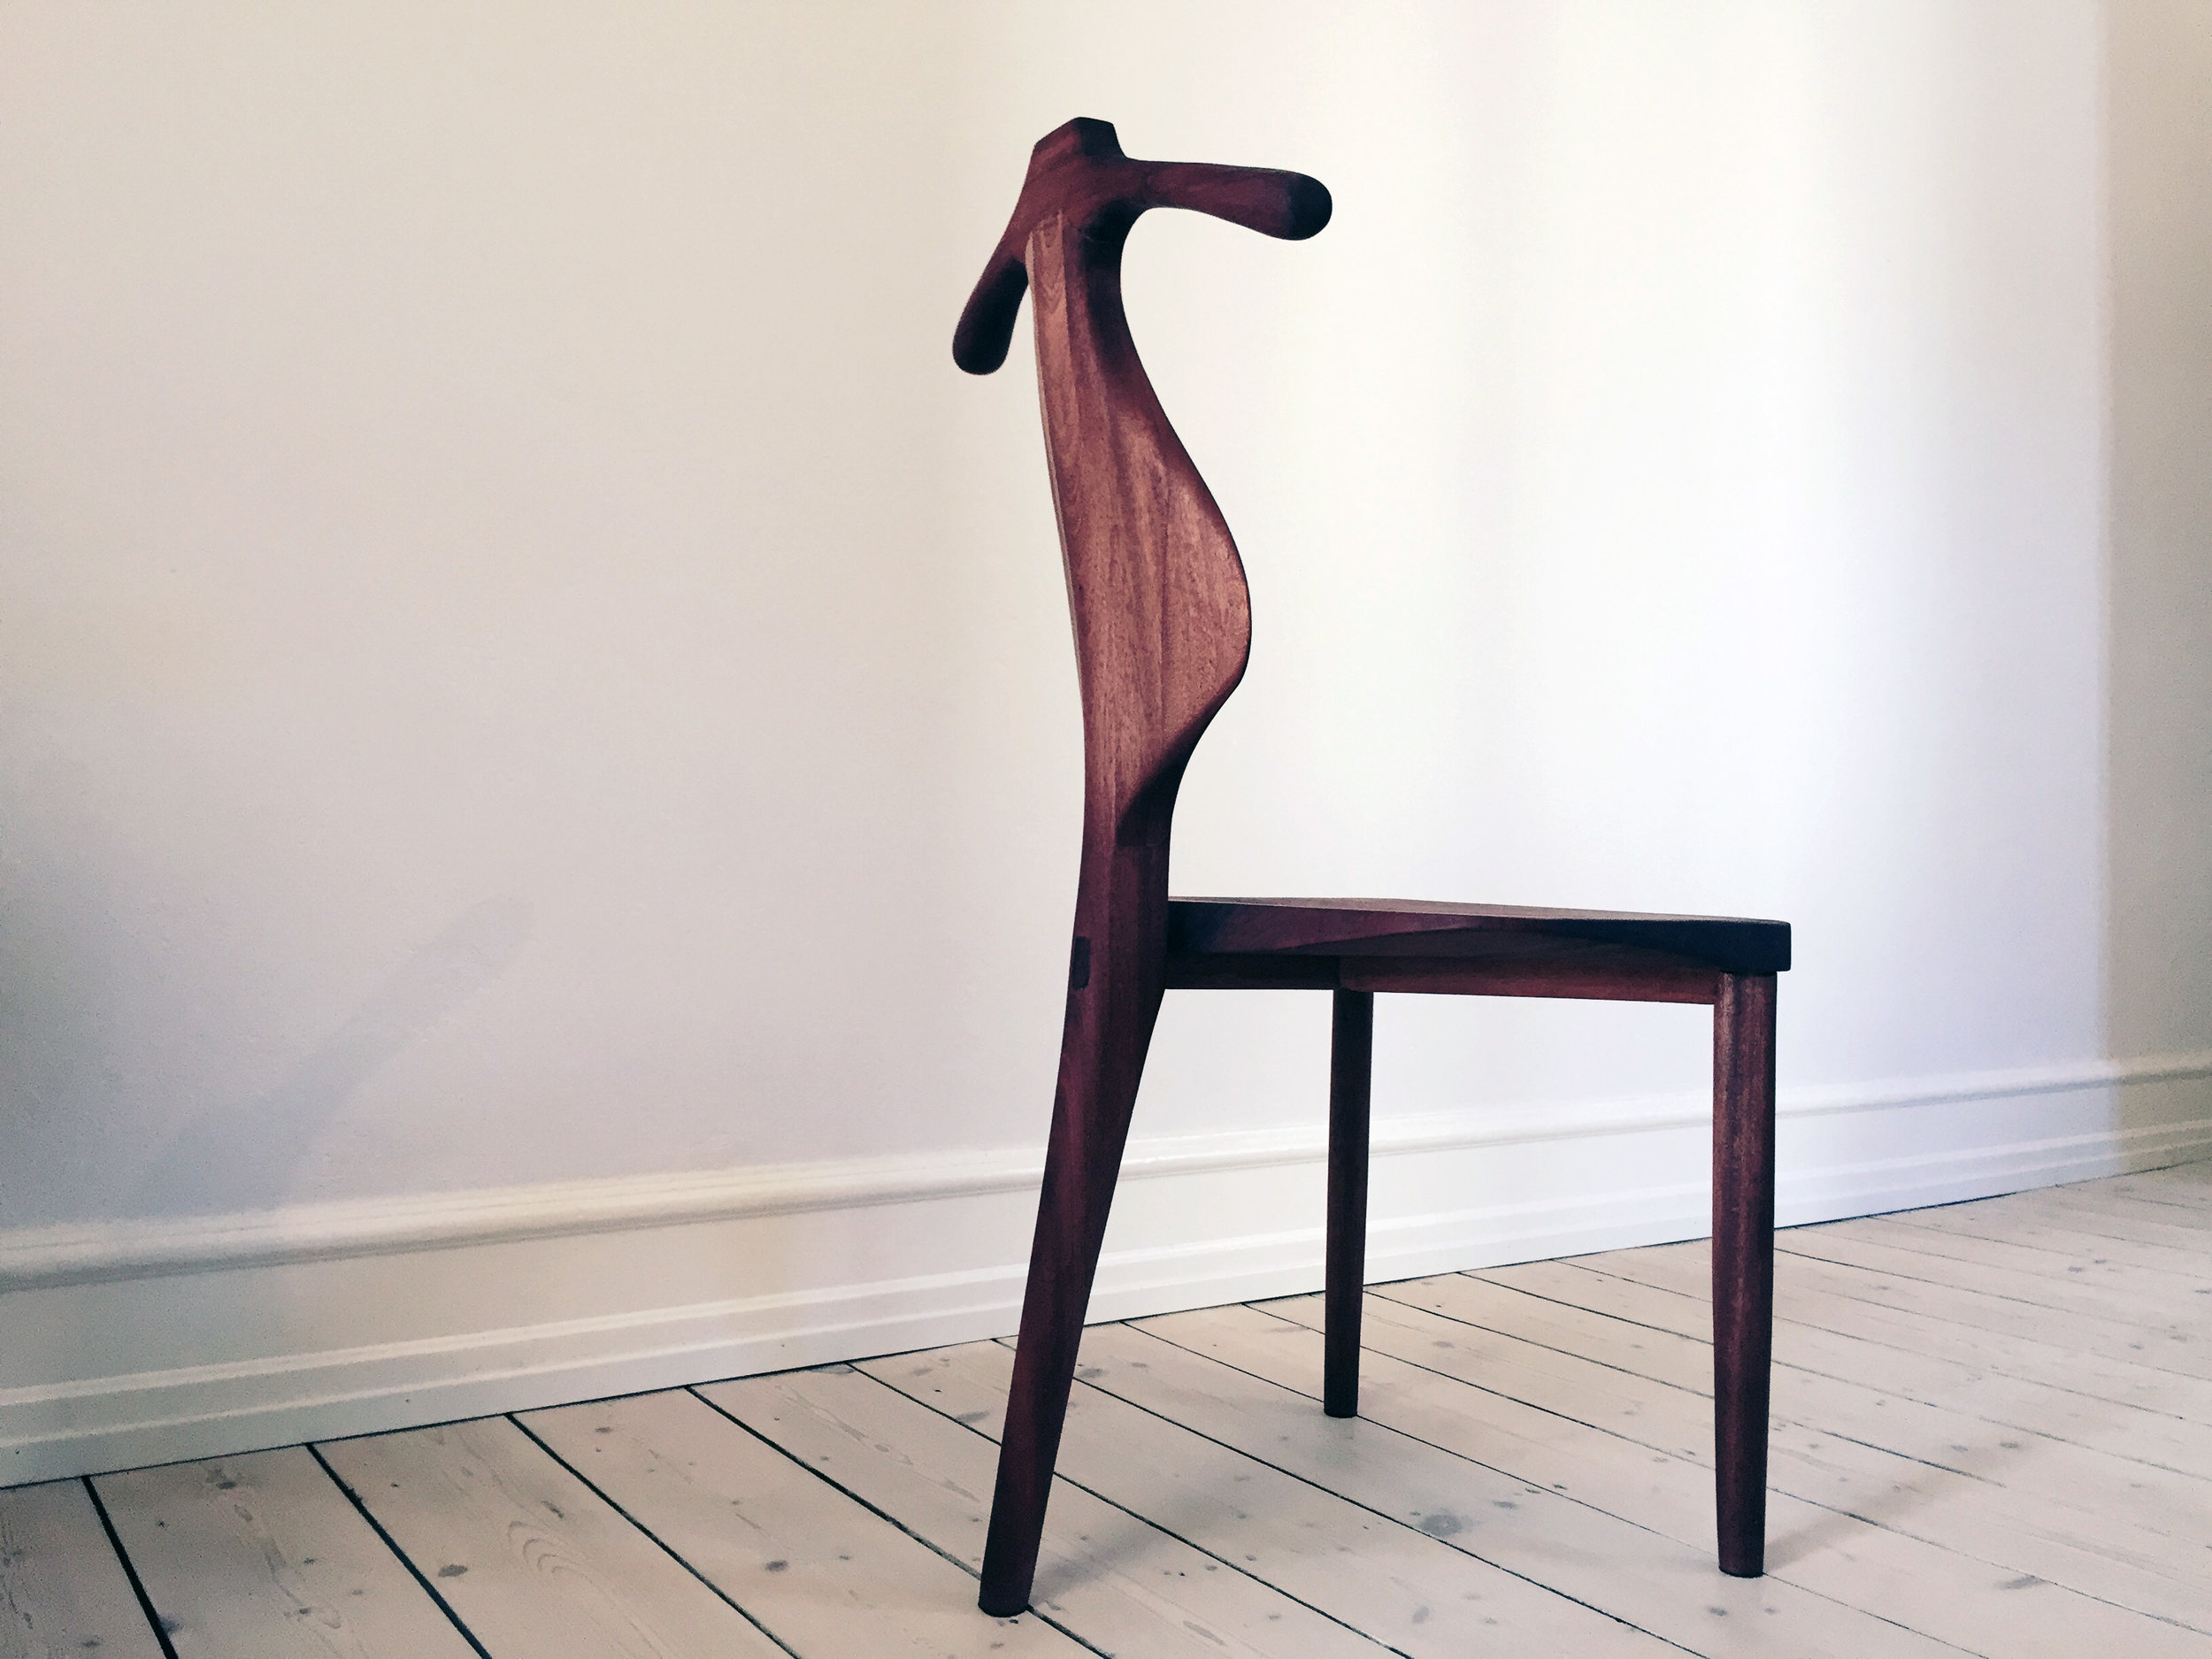 Valet Female   A tribute to master Hans J. Wegner and his iconic  PP250 chair . The project is a design and making of a new unique chair for the female, made from Mahogany wood retrieved in a through-away-dumpster. A project to illustrate design evolution and up-cycling processes from trash to an articulated design object. And the simple passion of designing and making with high quality wood materials. See short film of its making at project page.